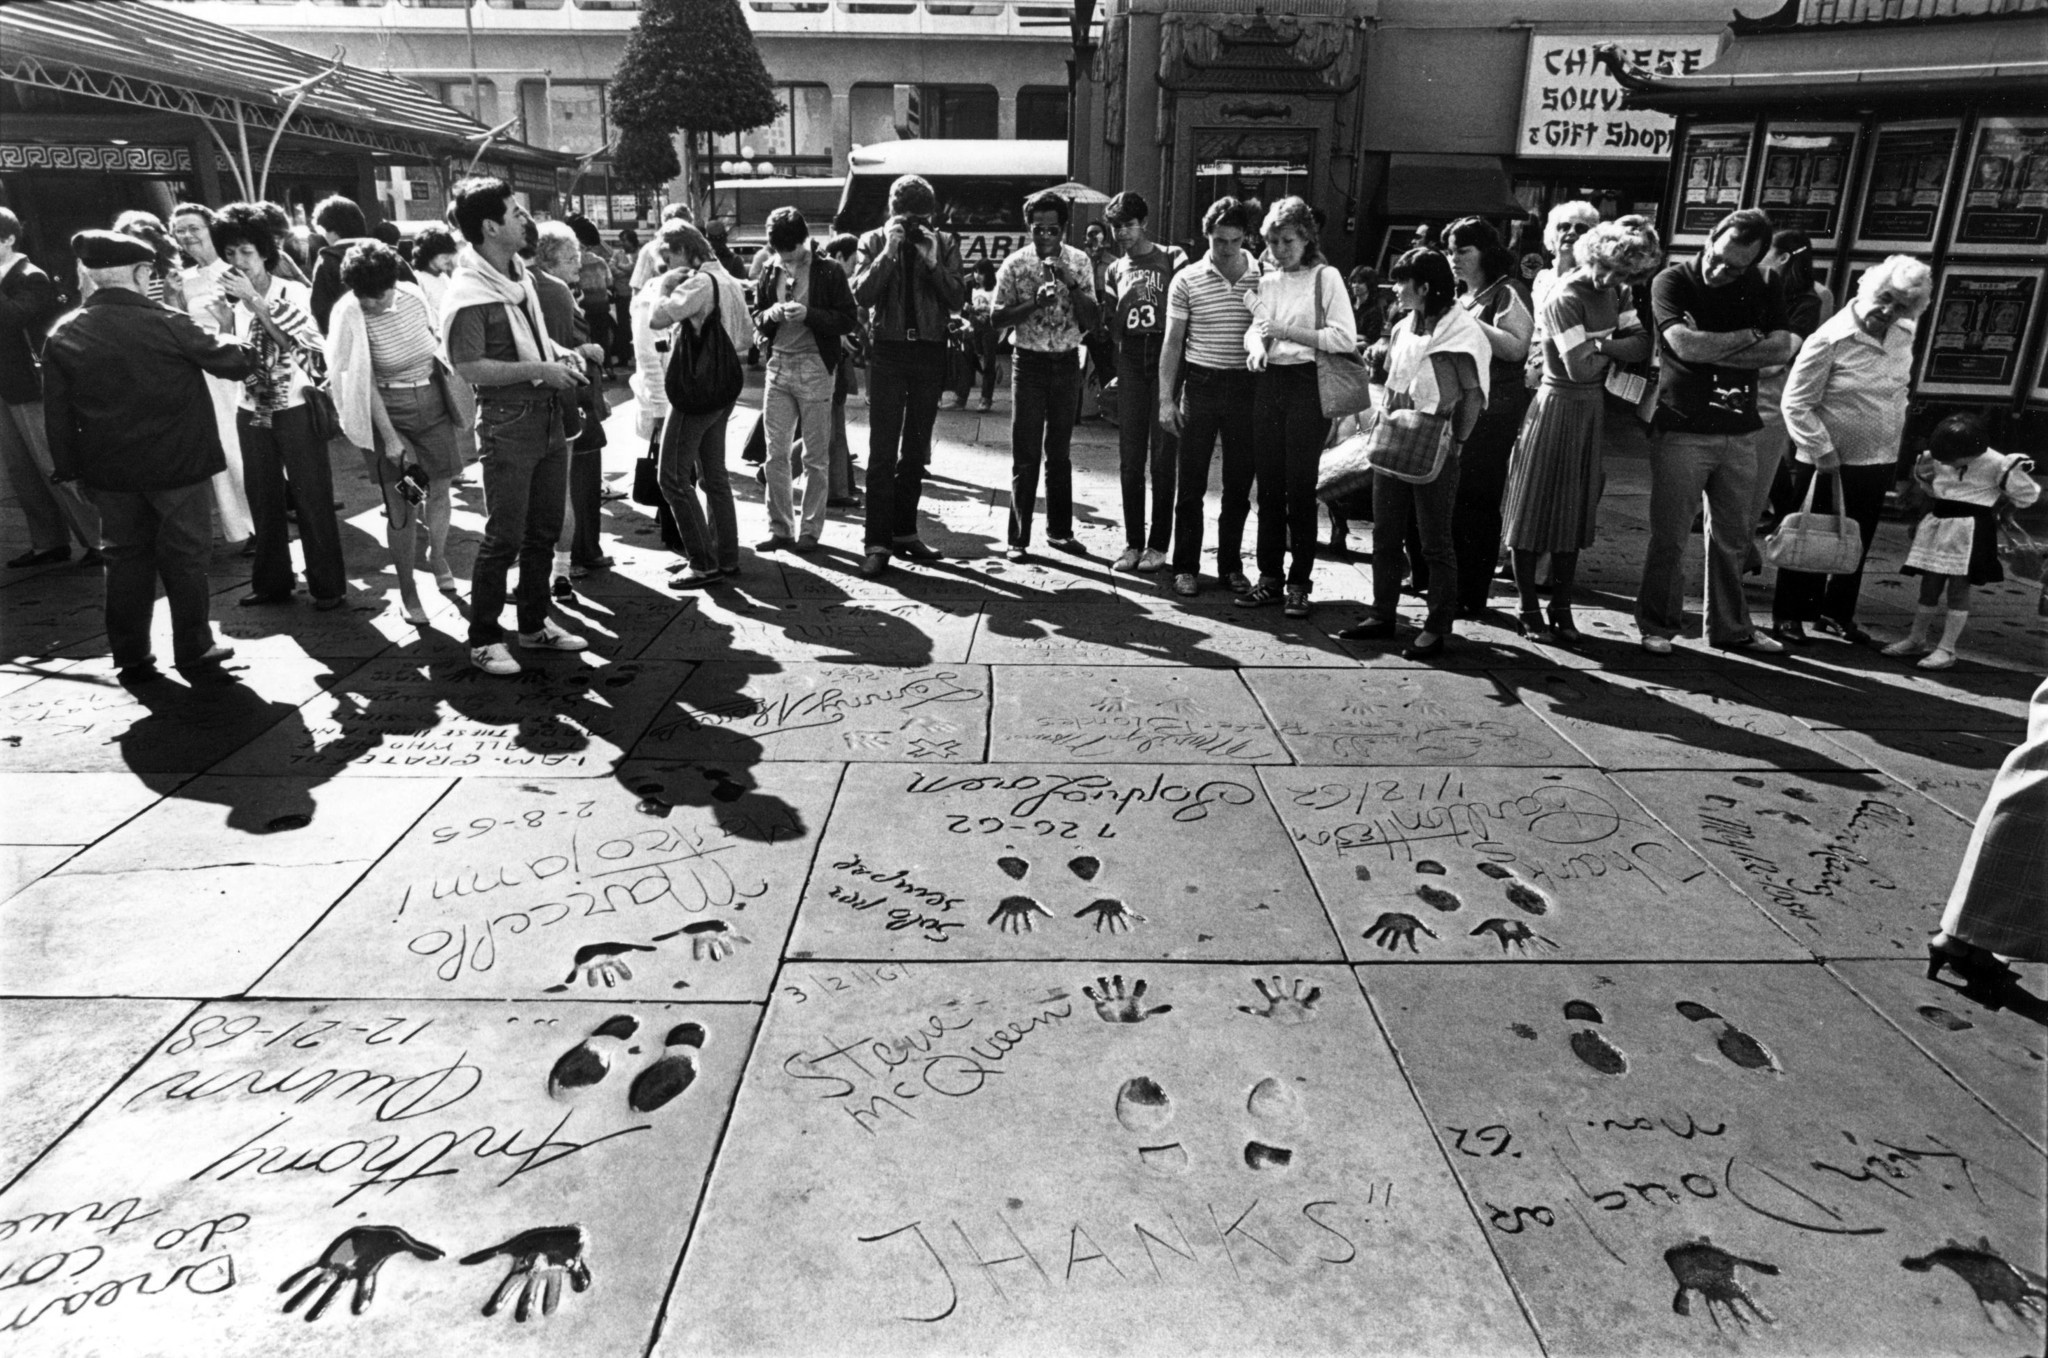 Tour groups at the Chinese Theatre on Feb. 22, 1983